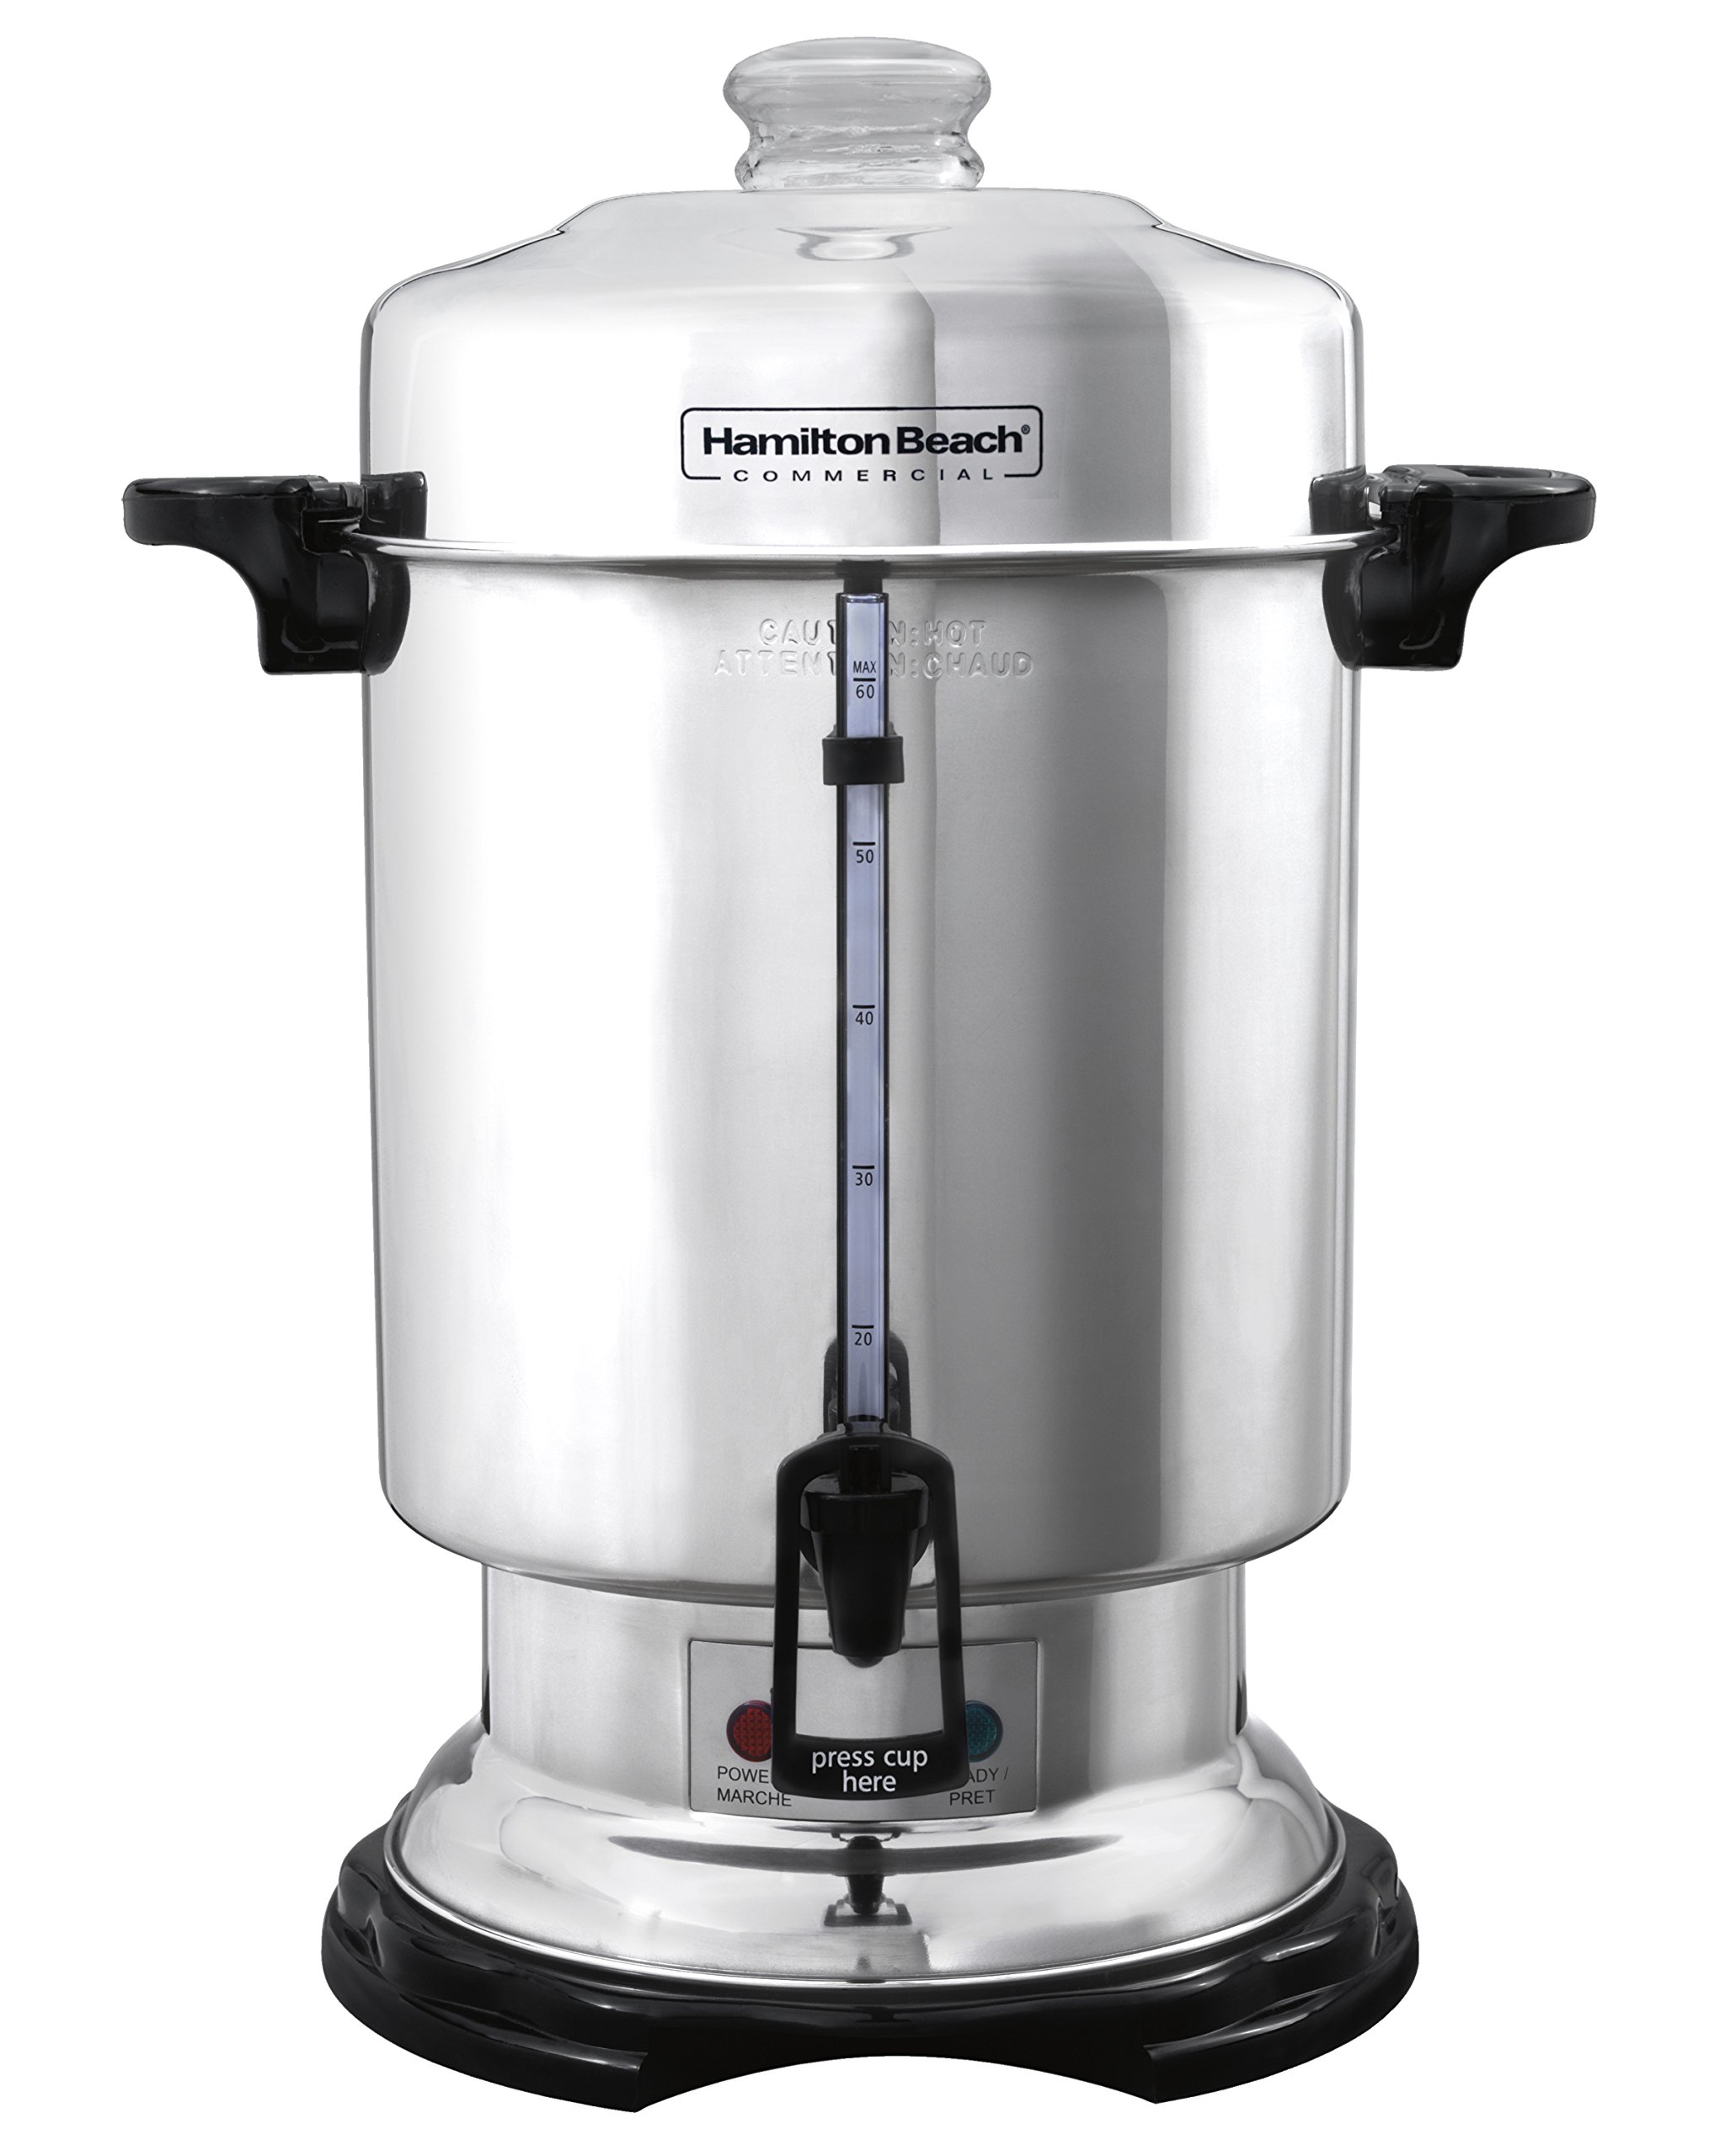 Hamilton Beach D50065 Commercial 60-Cup Stainless-Steel Coffee Urn, Silver by Hamilton Beach (Image #1)